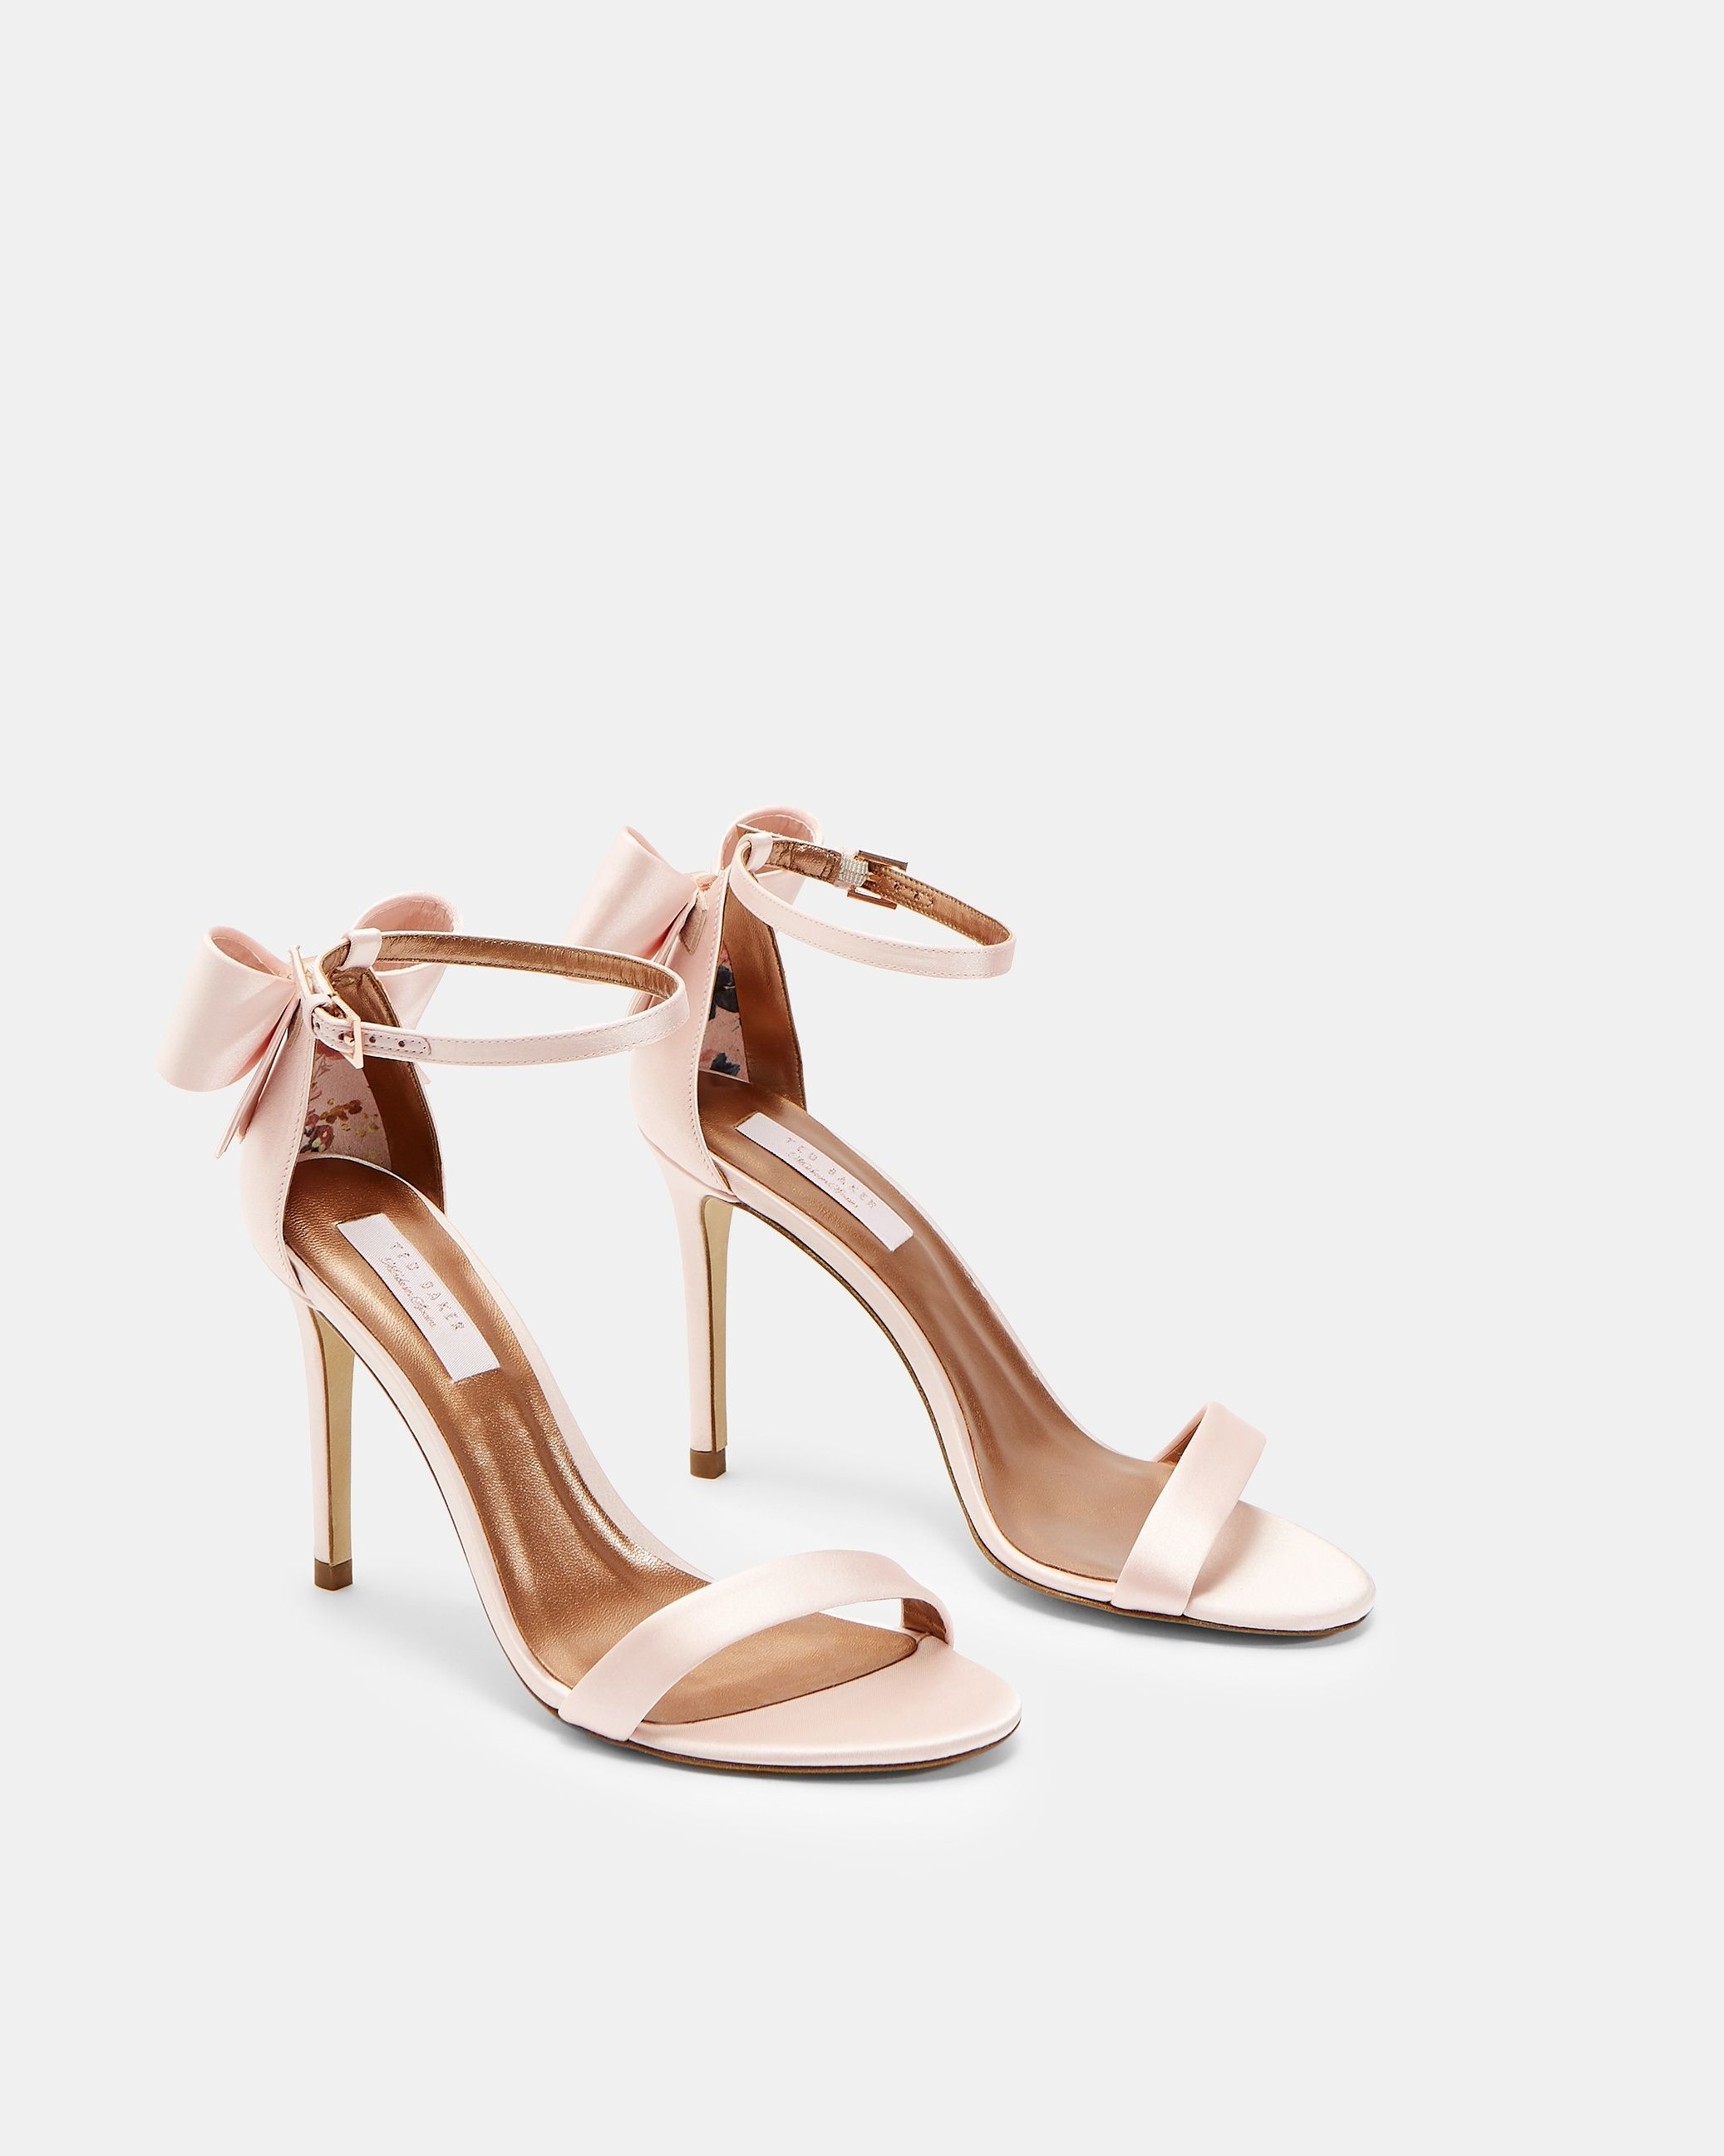 Ted Baker Bowtifl Bow Heeled Sandals in Pale Pink